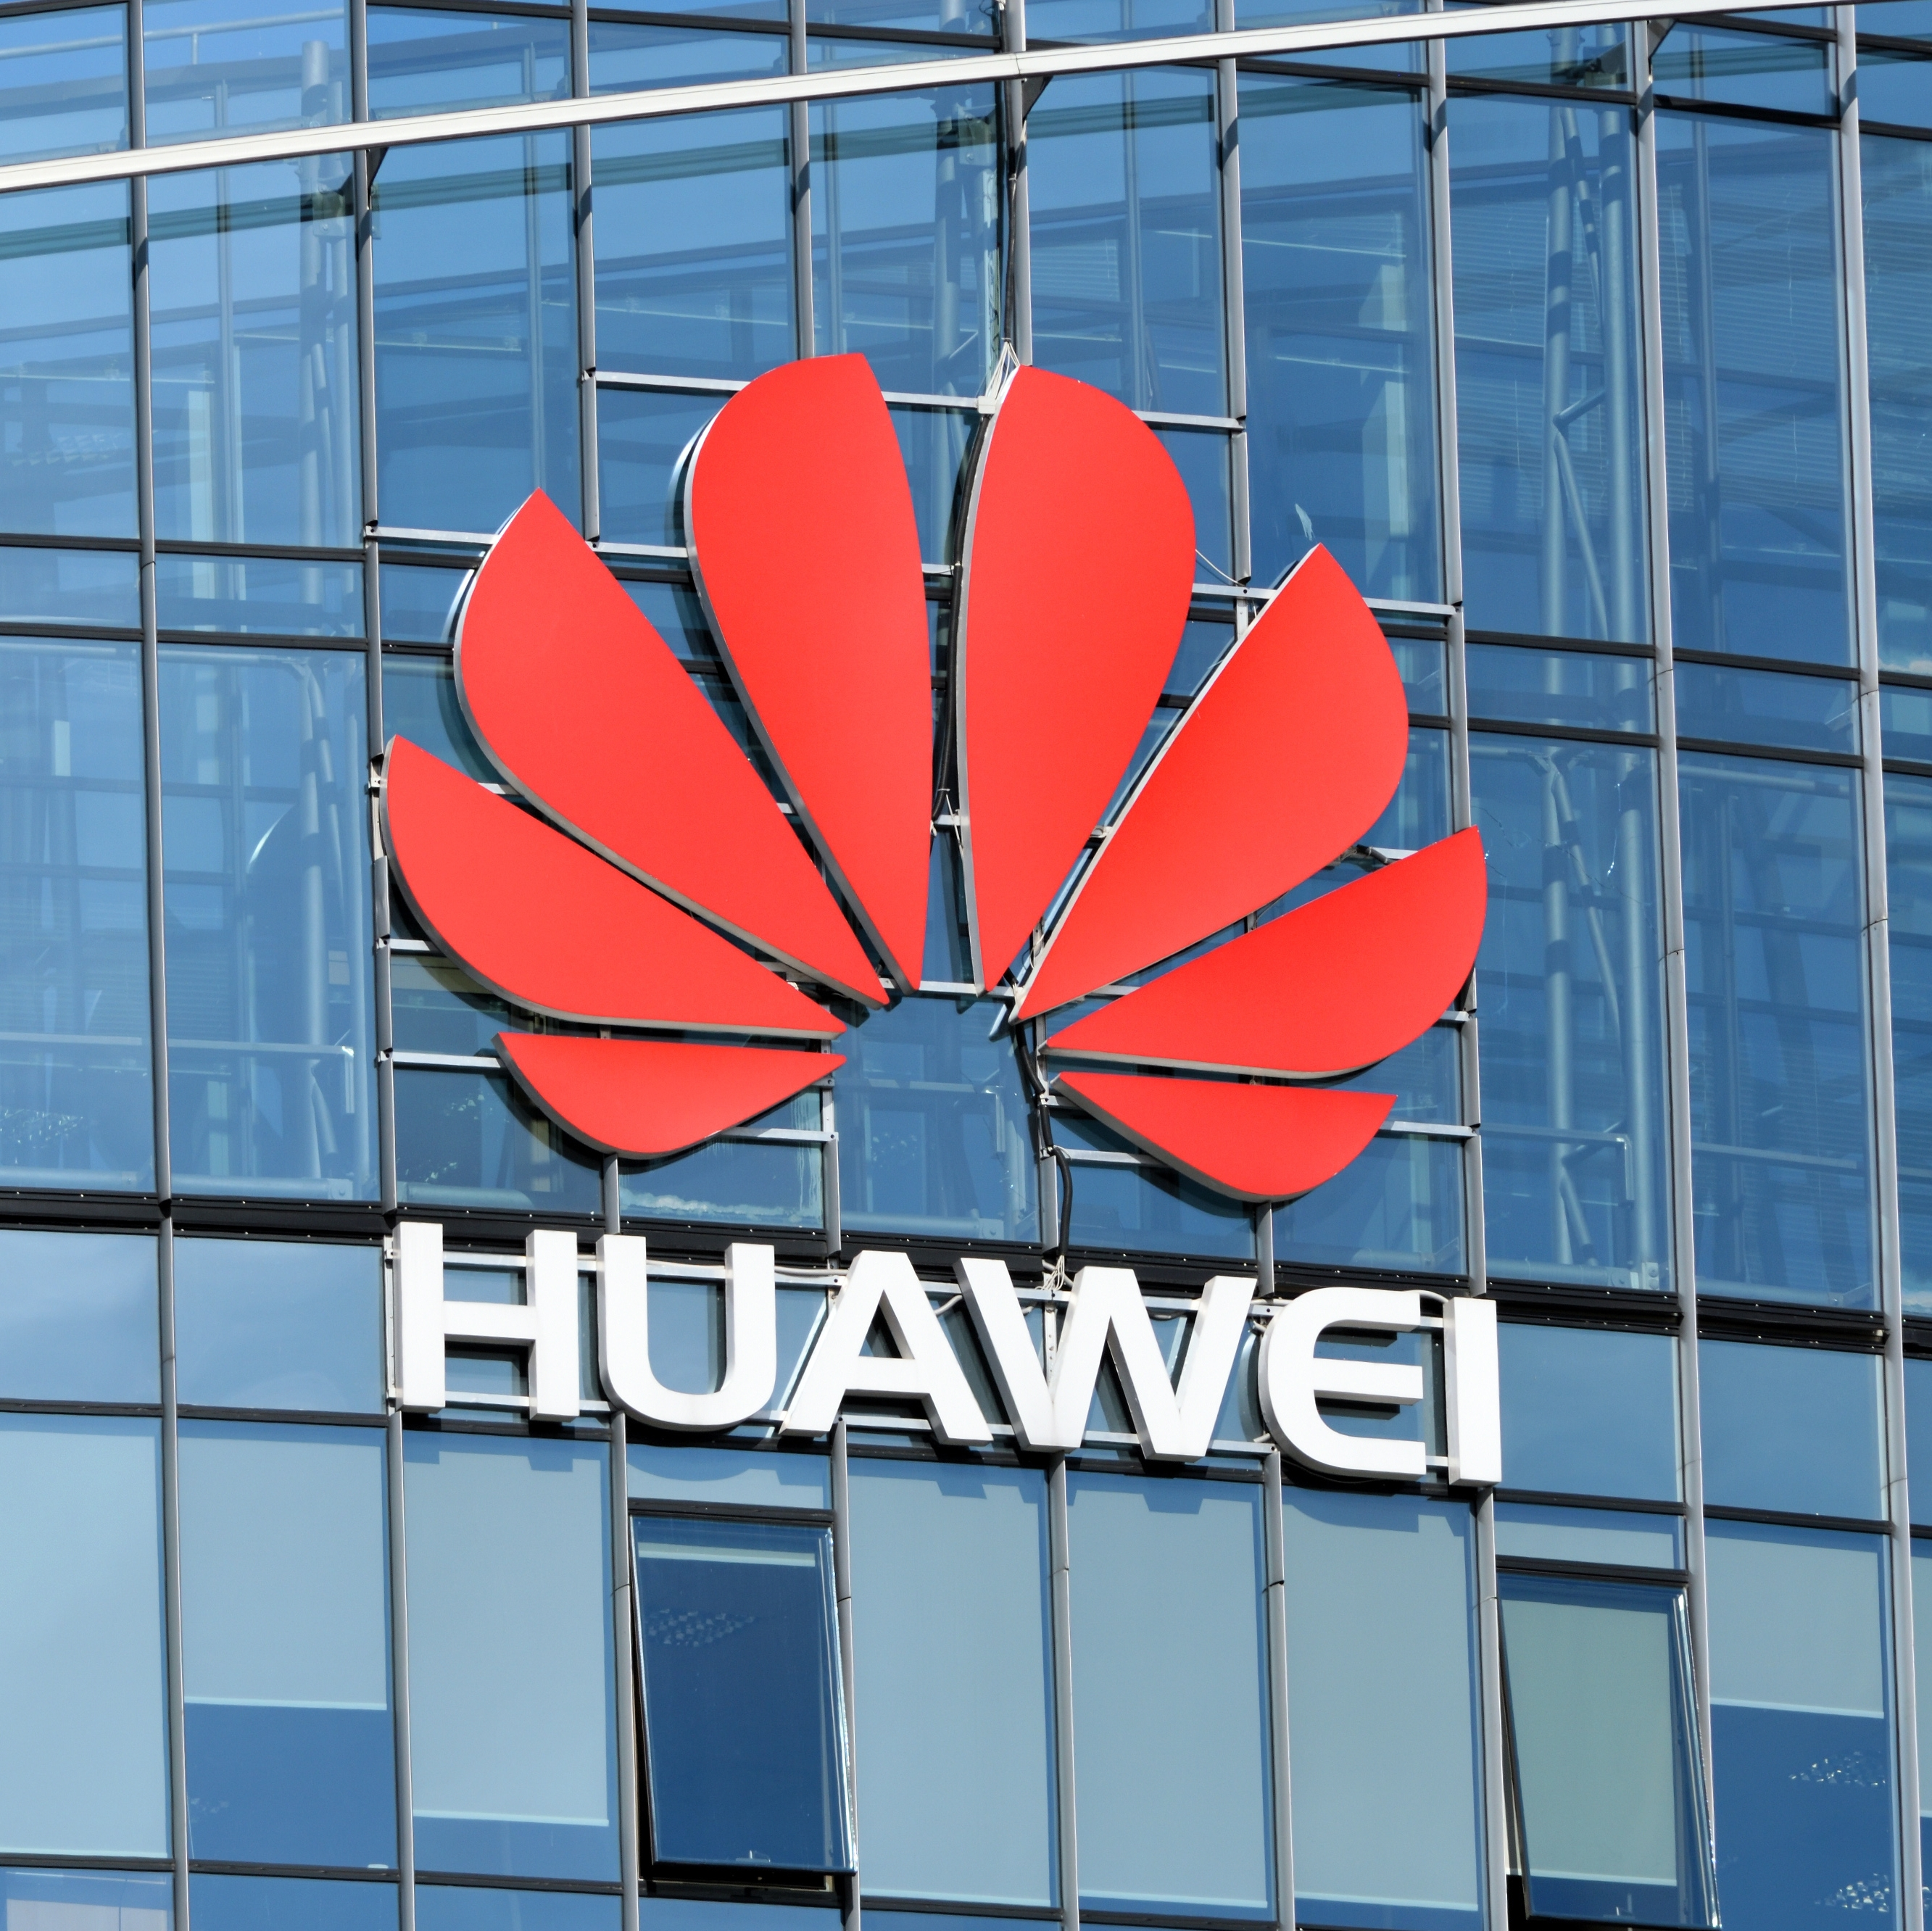 Got a Huawei phone? Your rights as Google prepares to restrict its use of Android